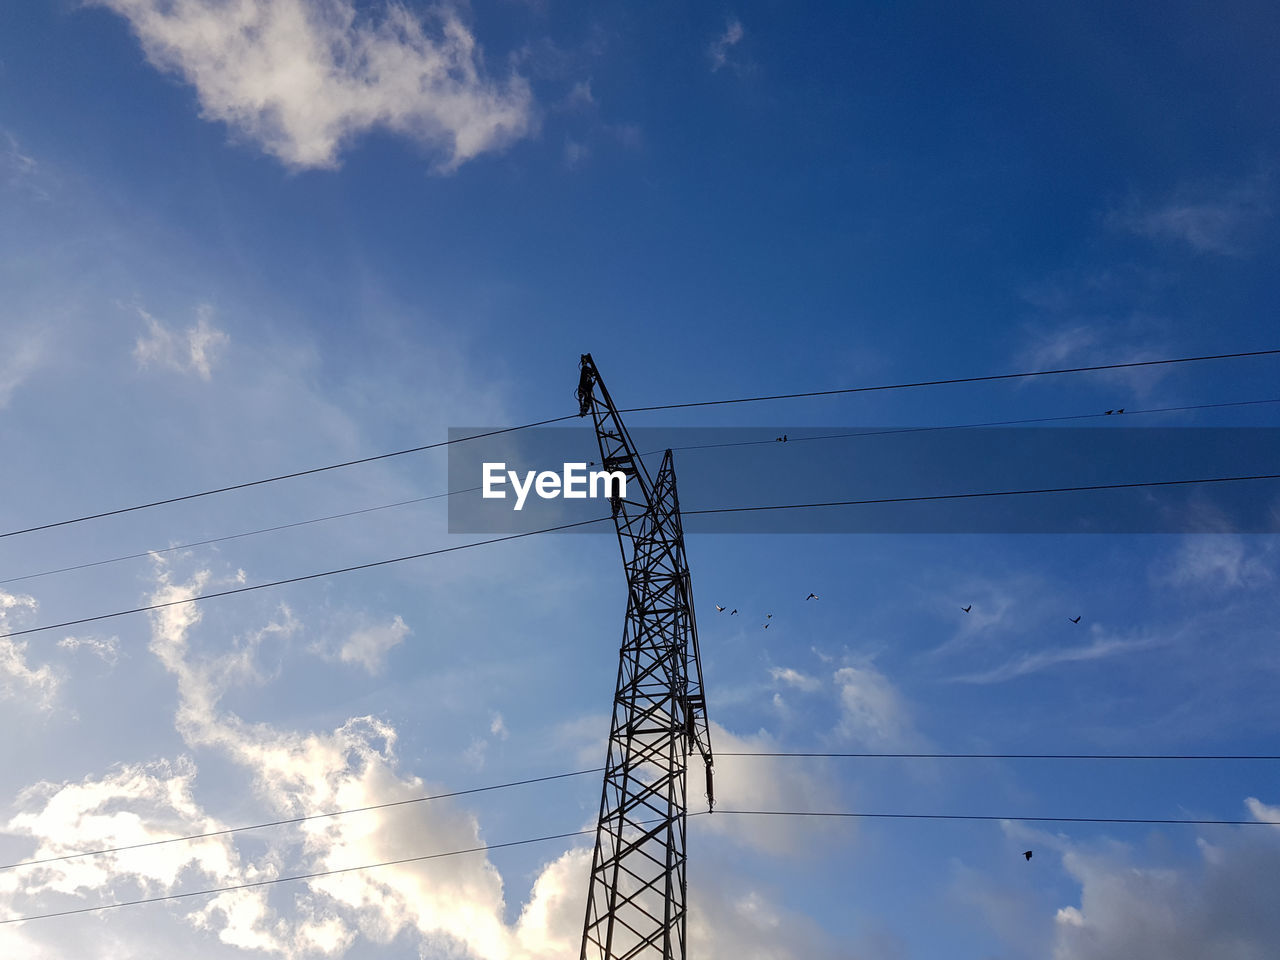 sky, cloud - sky, low angle view, electricity, cable, technology, connection, power line, electricity pylon, power supply, nature, day, blue, fuel and power generation, no people, outdoors, metal, tall - high, built structure, silhouette, complexity, electrical equipment, telephone line, flock of birds